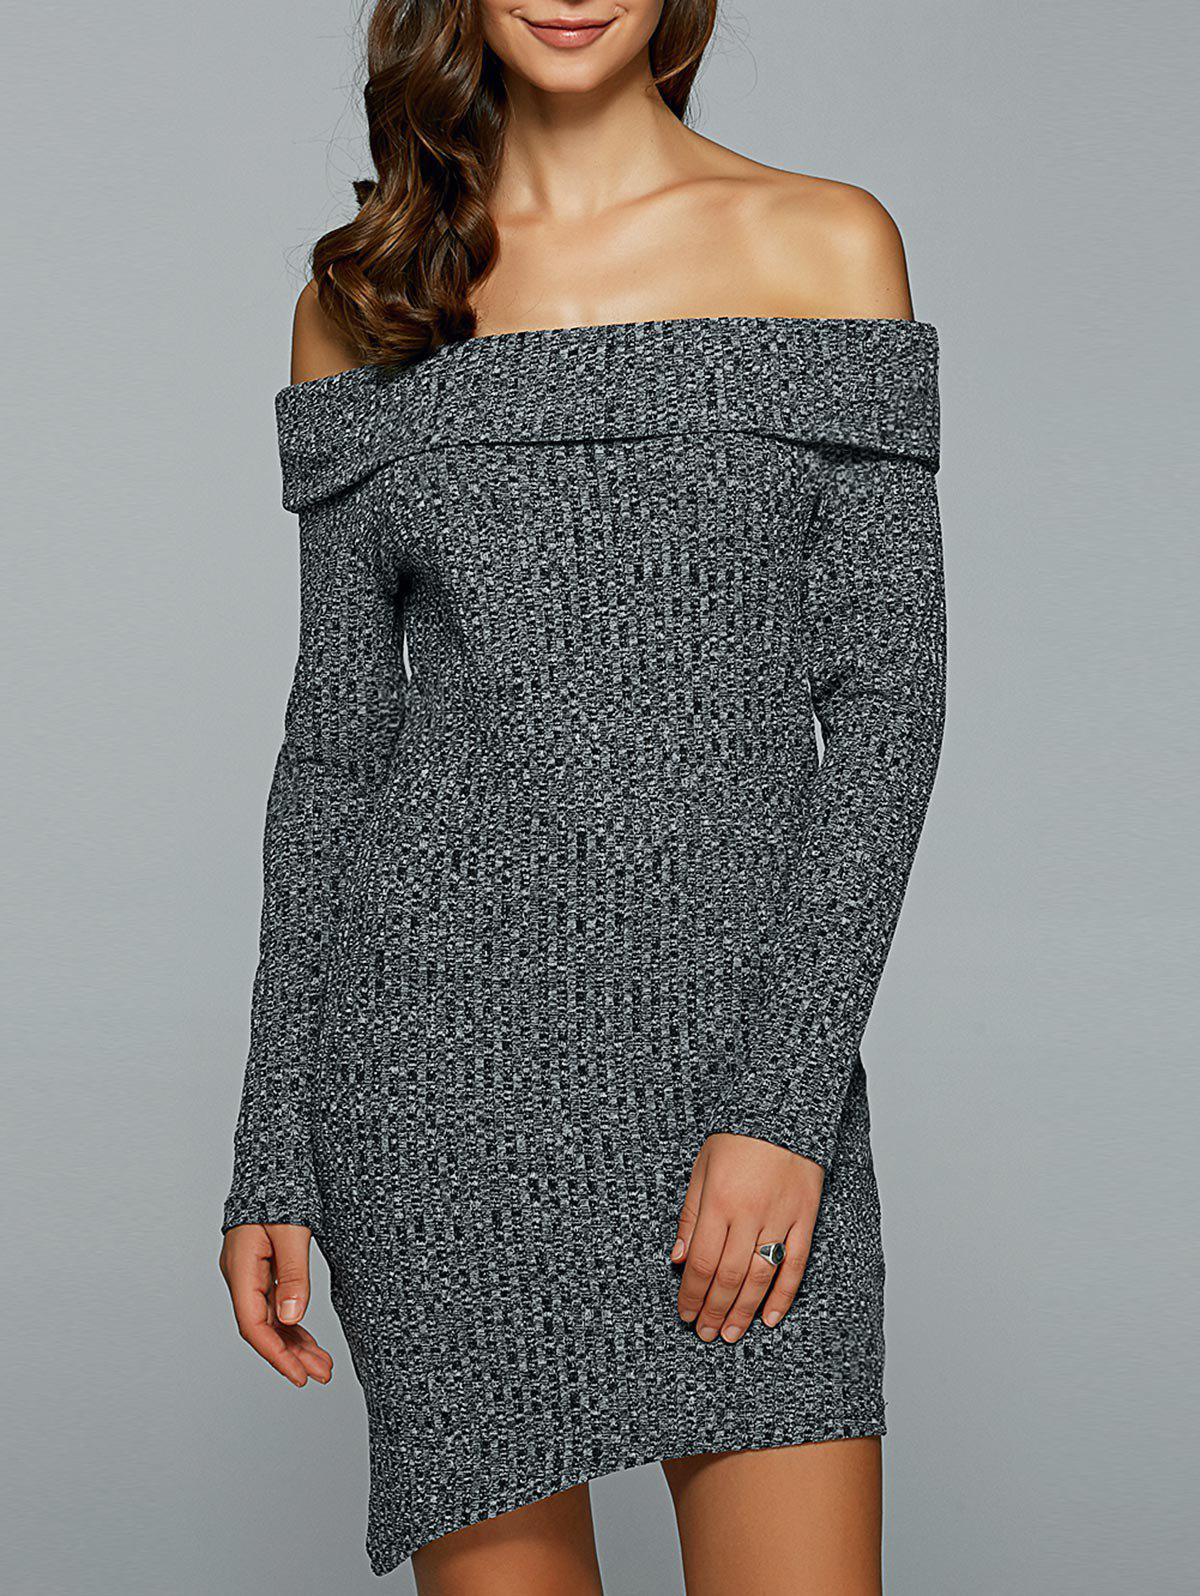 Off-The-Shoulder Heather Asymmetrical Jumper DressWOMEN<br><br>Size: S; Color: GRAY; Style: Casual; Material: Cotton,Spandex,Wool; Silhouette: Sheath; Dresses Length: Mini; Neckline: Off The Shoulder; Sleeve Length: Long Sleeves; Pattern Type: Solid; With Belt: No; Season: Fall,Winter; Weight: 0.281kg; Package Contents: 1 x Dress;